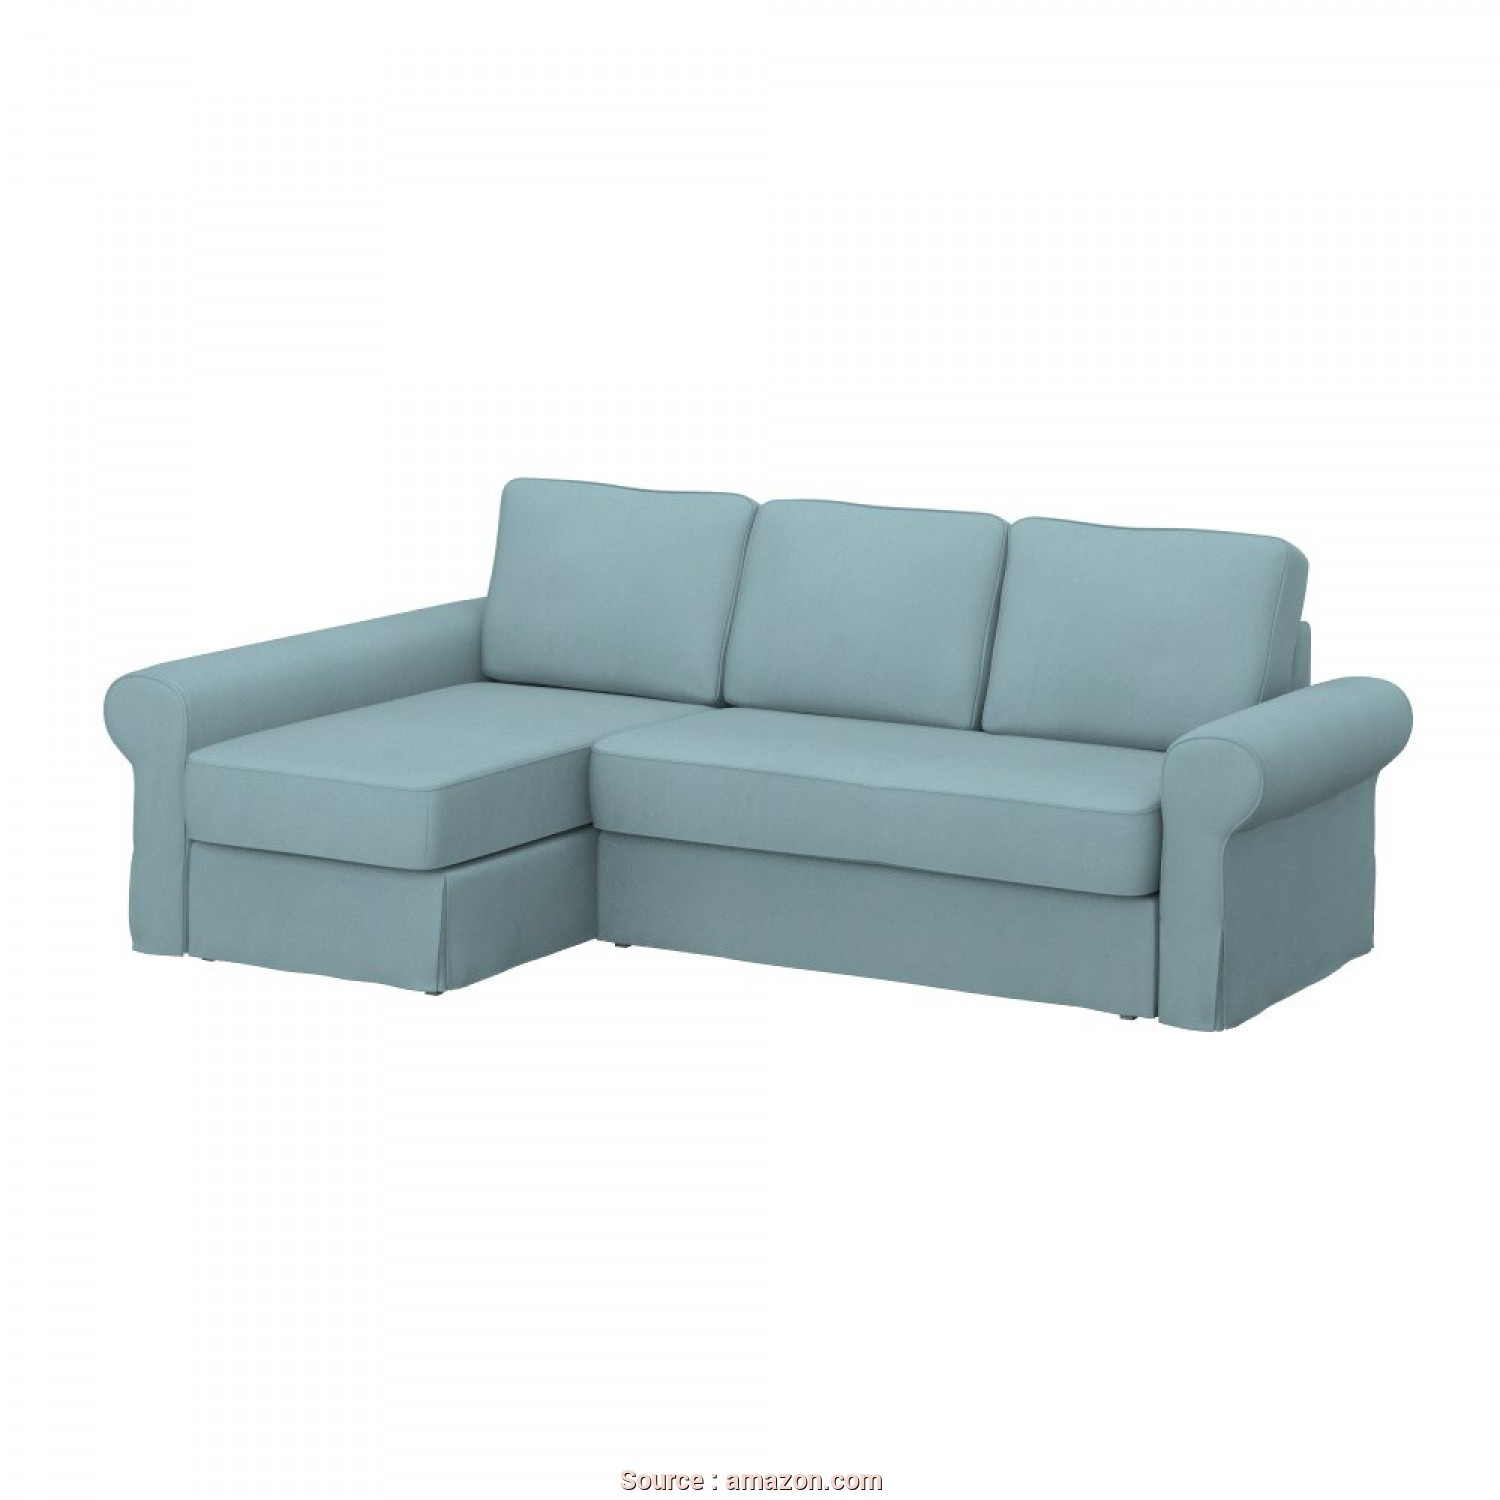 Ikea Backabro Nl, Casuale Amazon.Com: Soferia, Replacement Cover, IKEA BACKABRO Sofa With Chaise Longue,, Leather Mint: Home & Kitchen